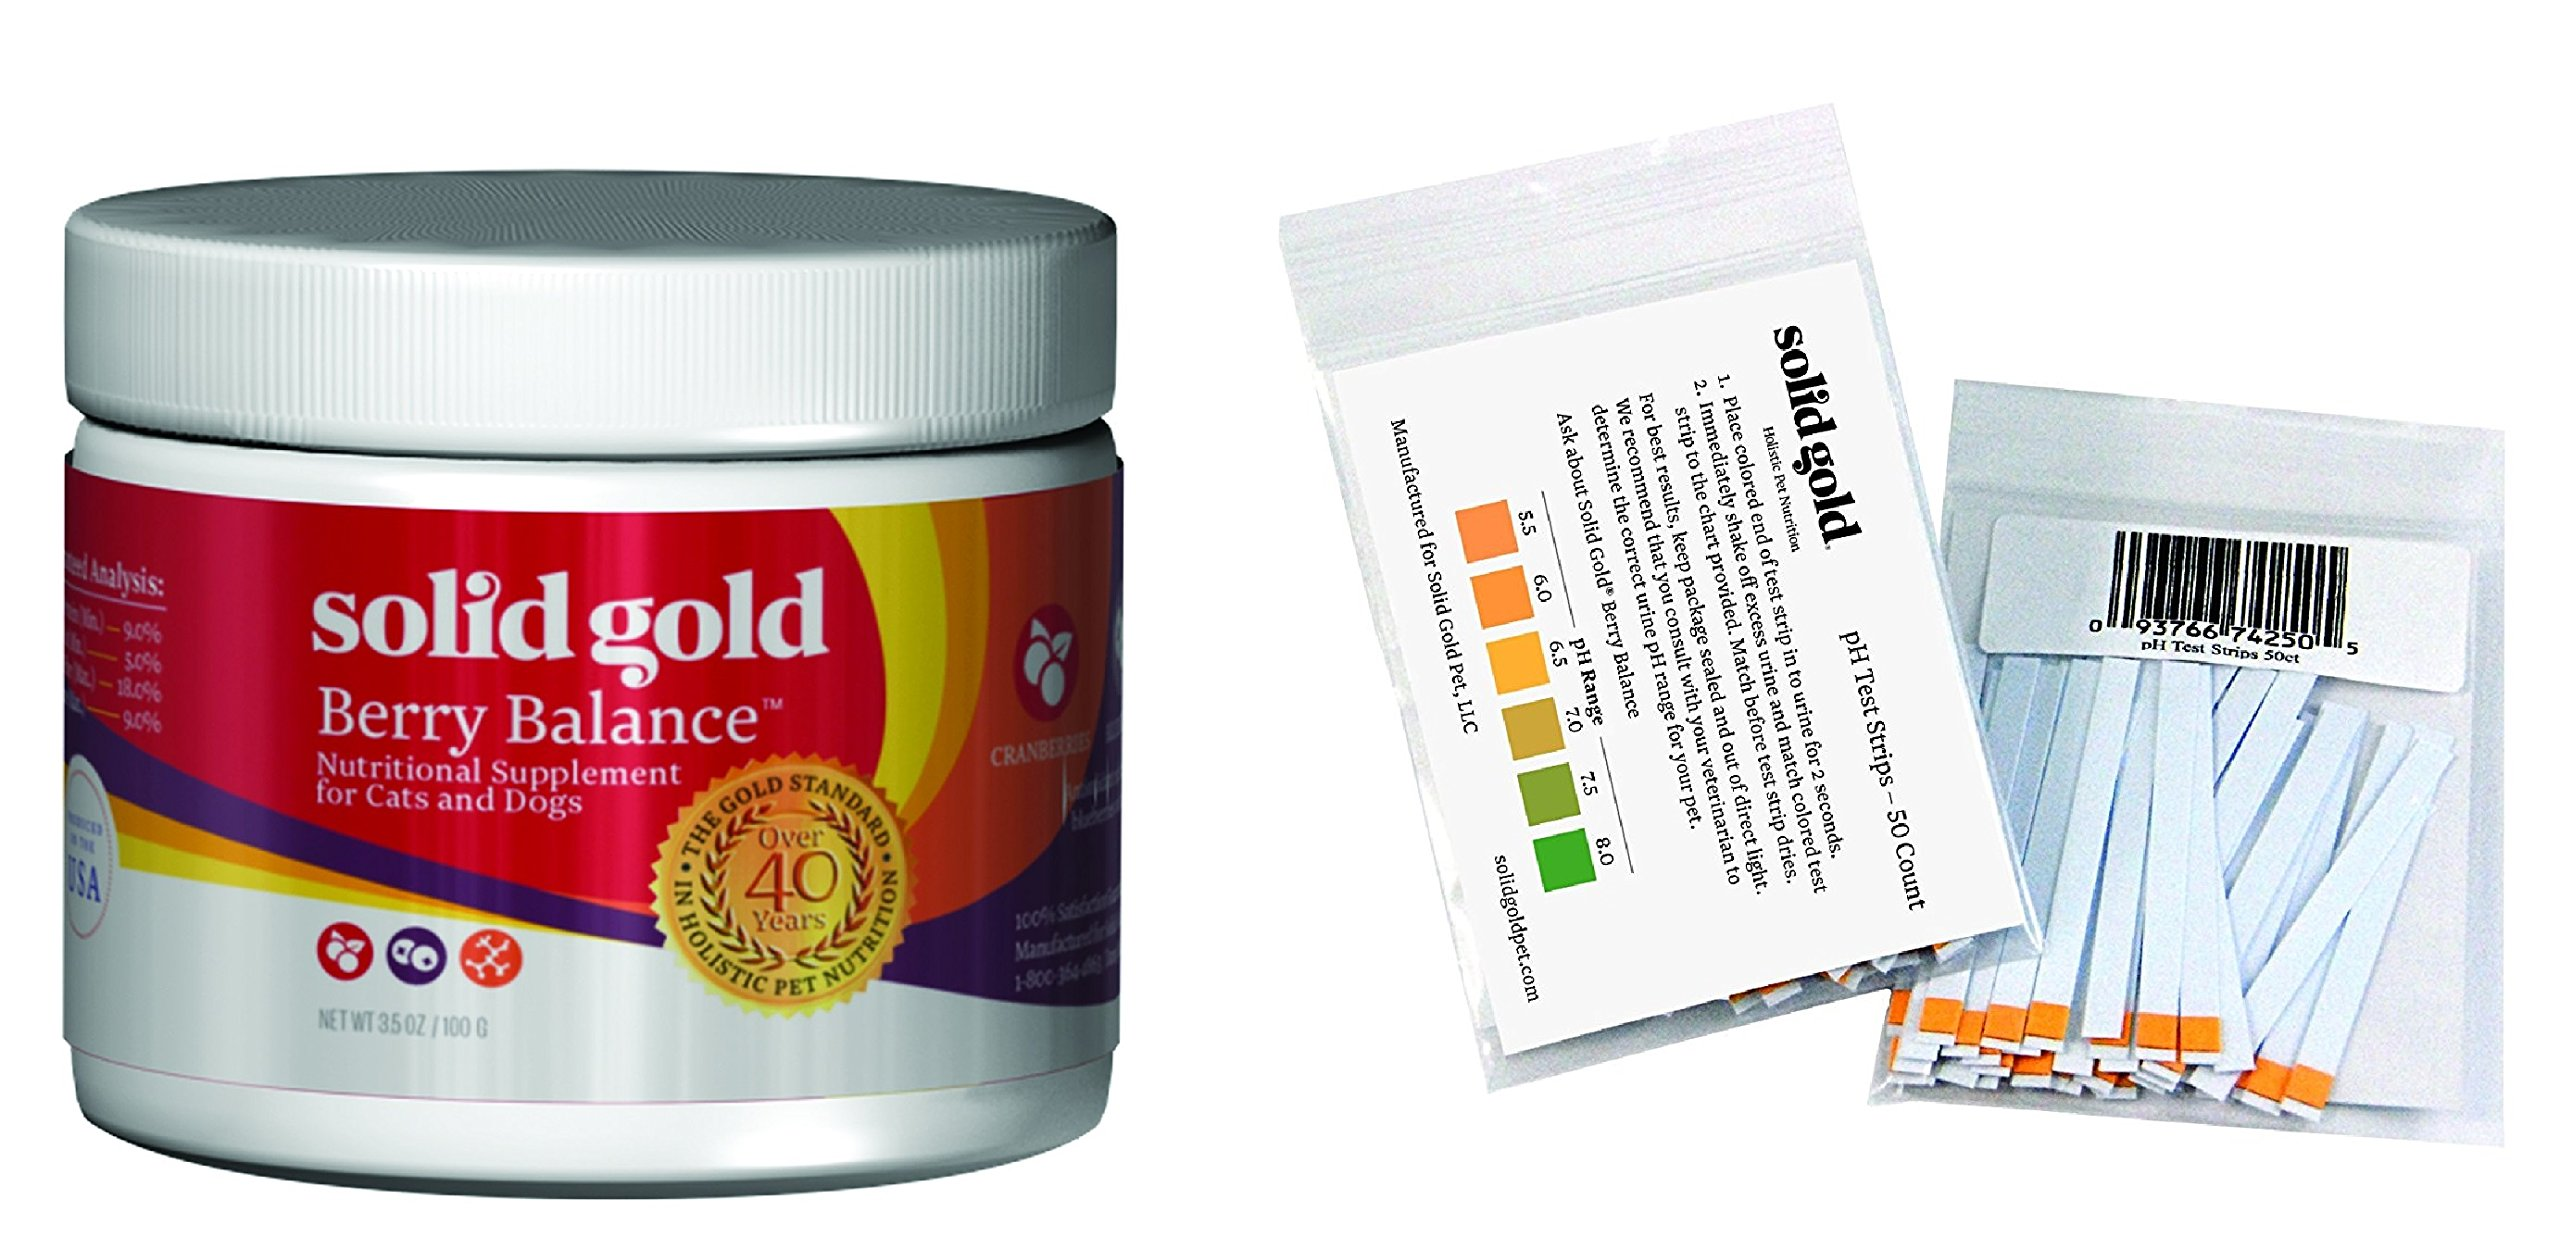 Solid Gold Urine Testing pH Strips(50ct) and Berry Balance Nutritional Supplement Powder(3.5oz) for Dogs & Cats - Natural Cranberry & Blueberry Flavor, All Ages, All Sizes